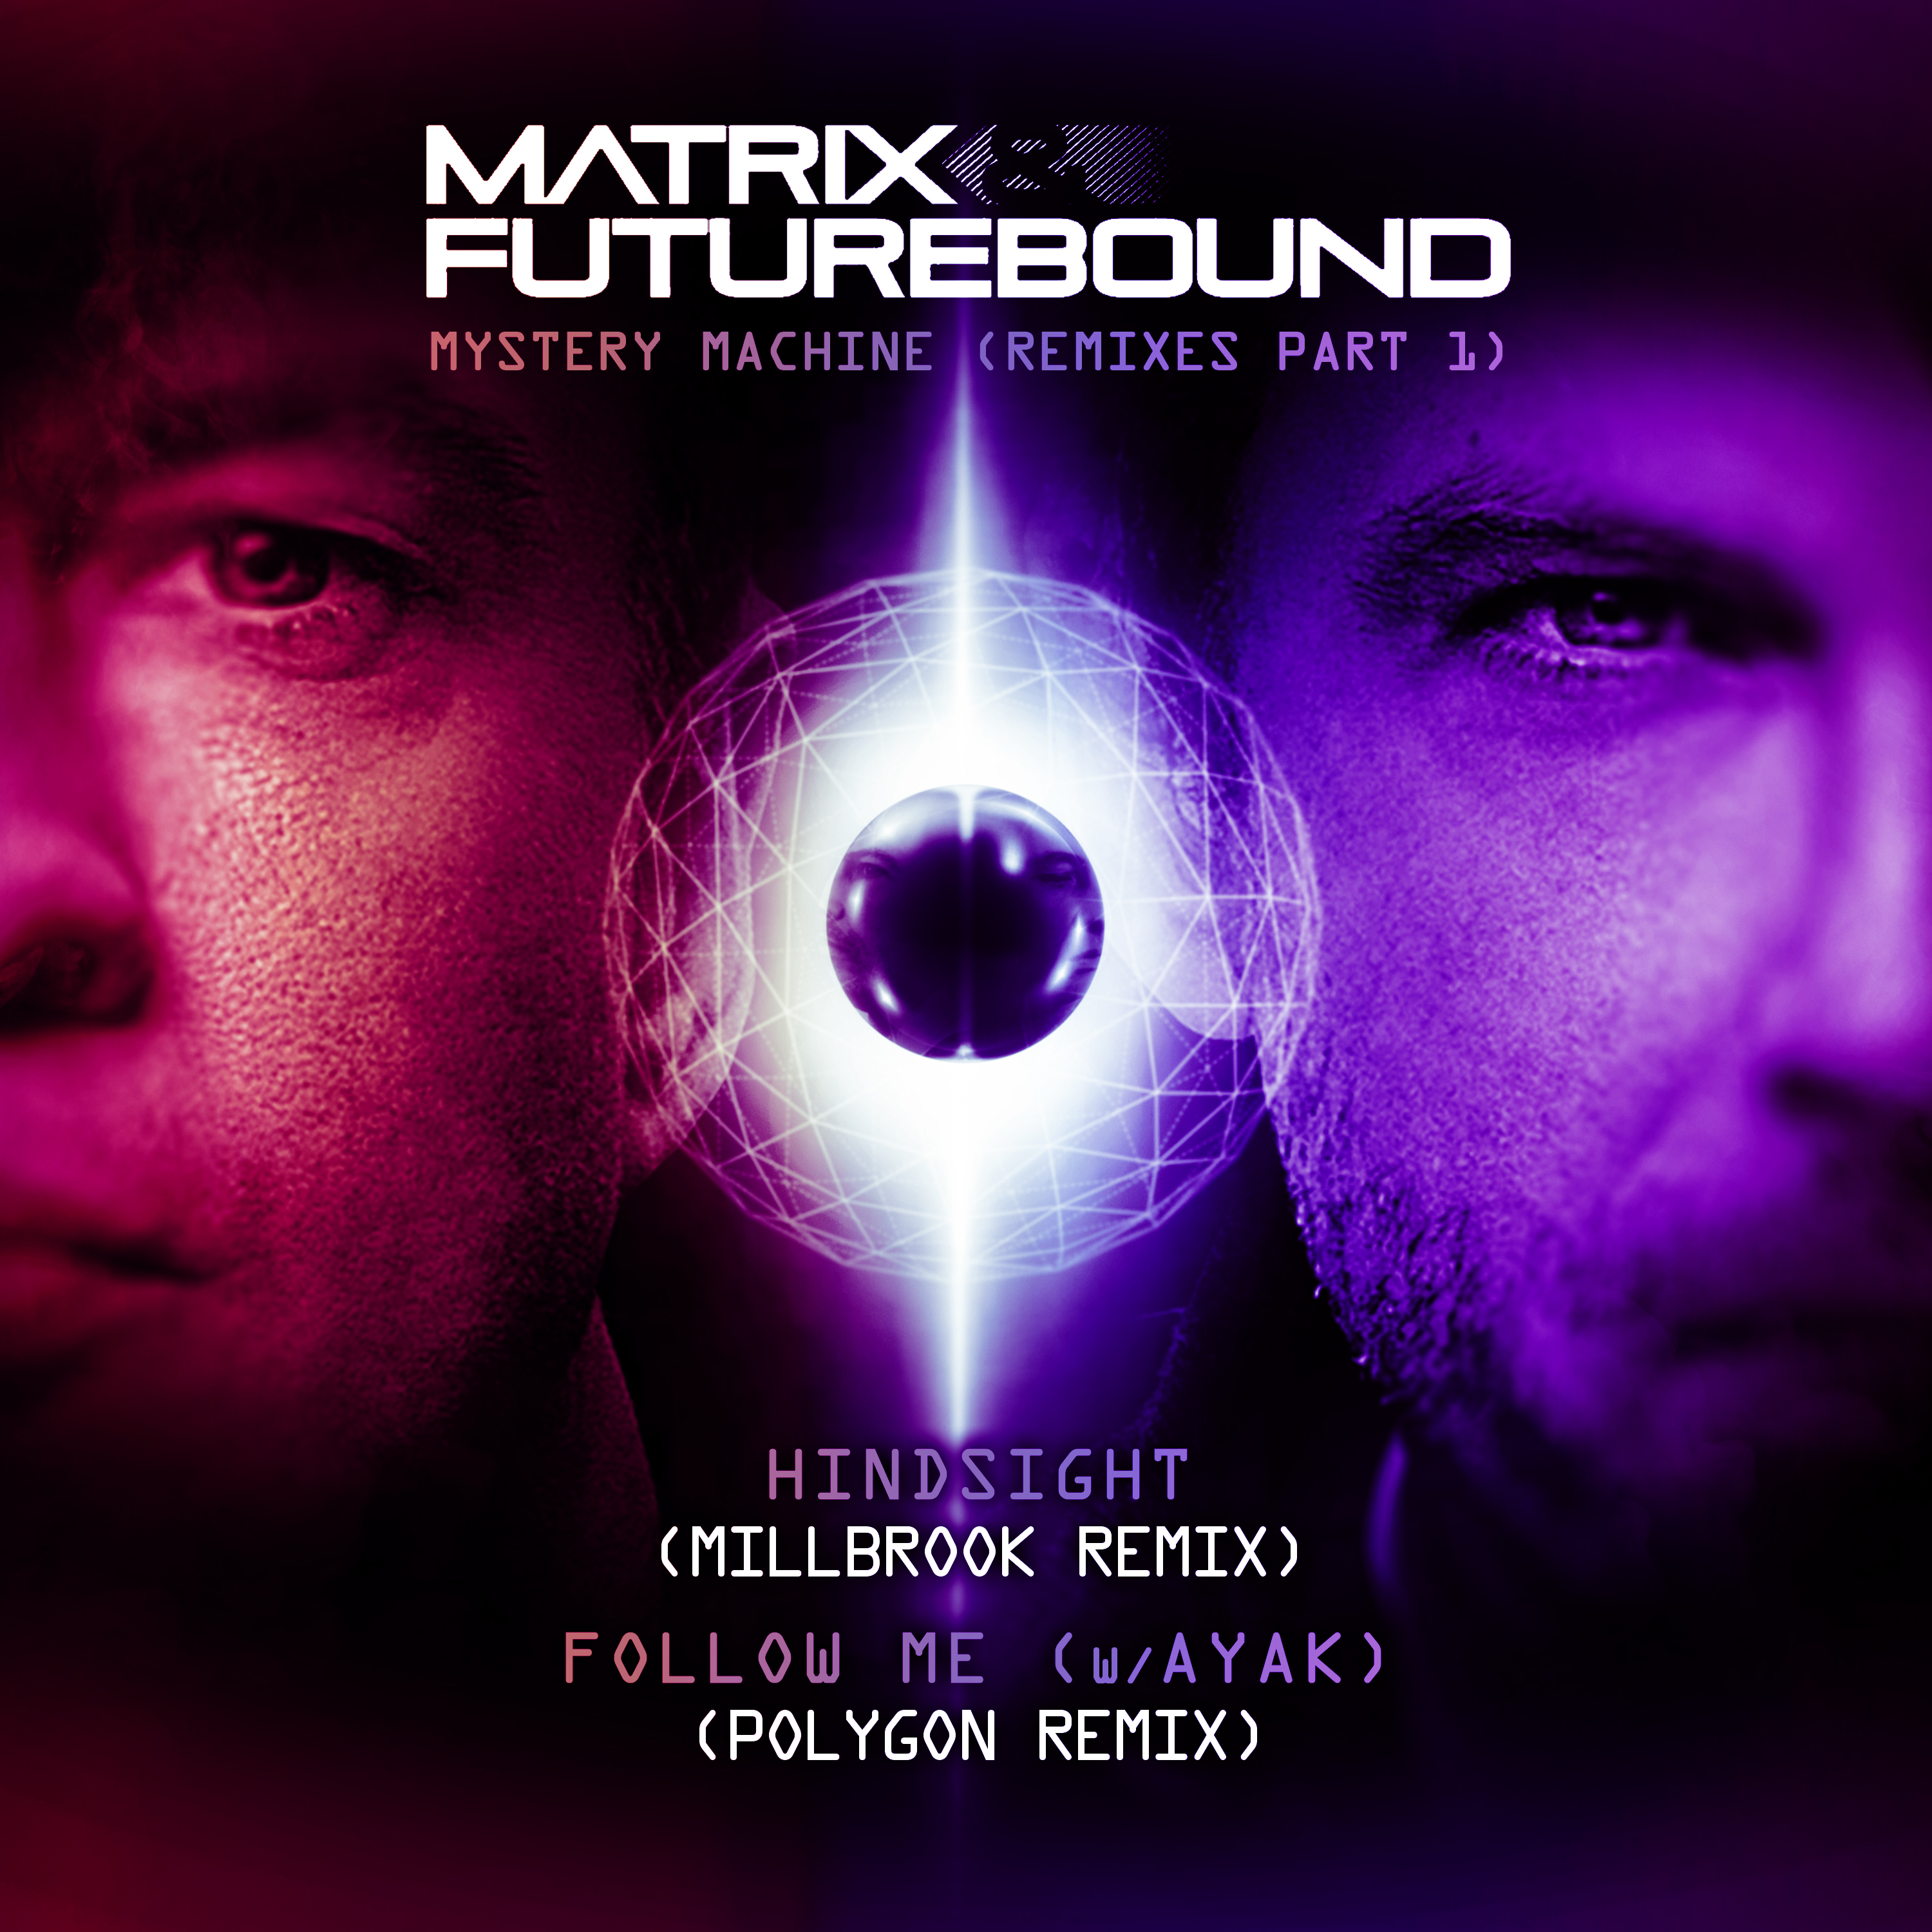 Matrix & Futurebound - Mystery Machine Remixes Part 1